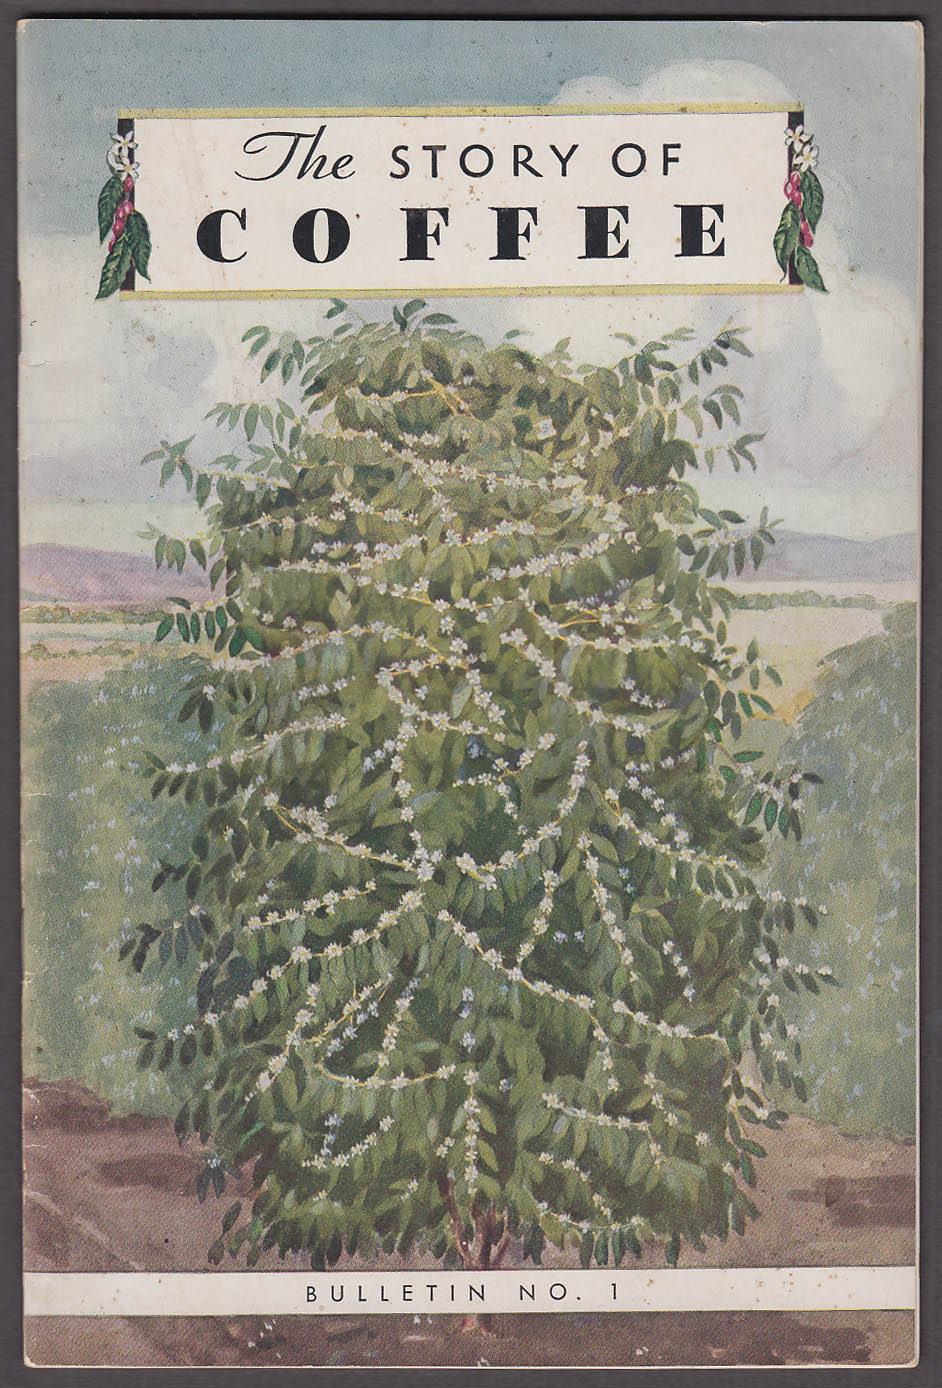 American Can Bureau of Coffee Information Story of Coffee booklet 1934